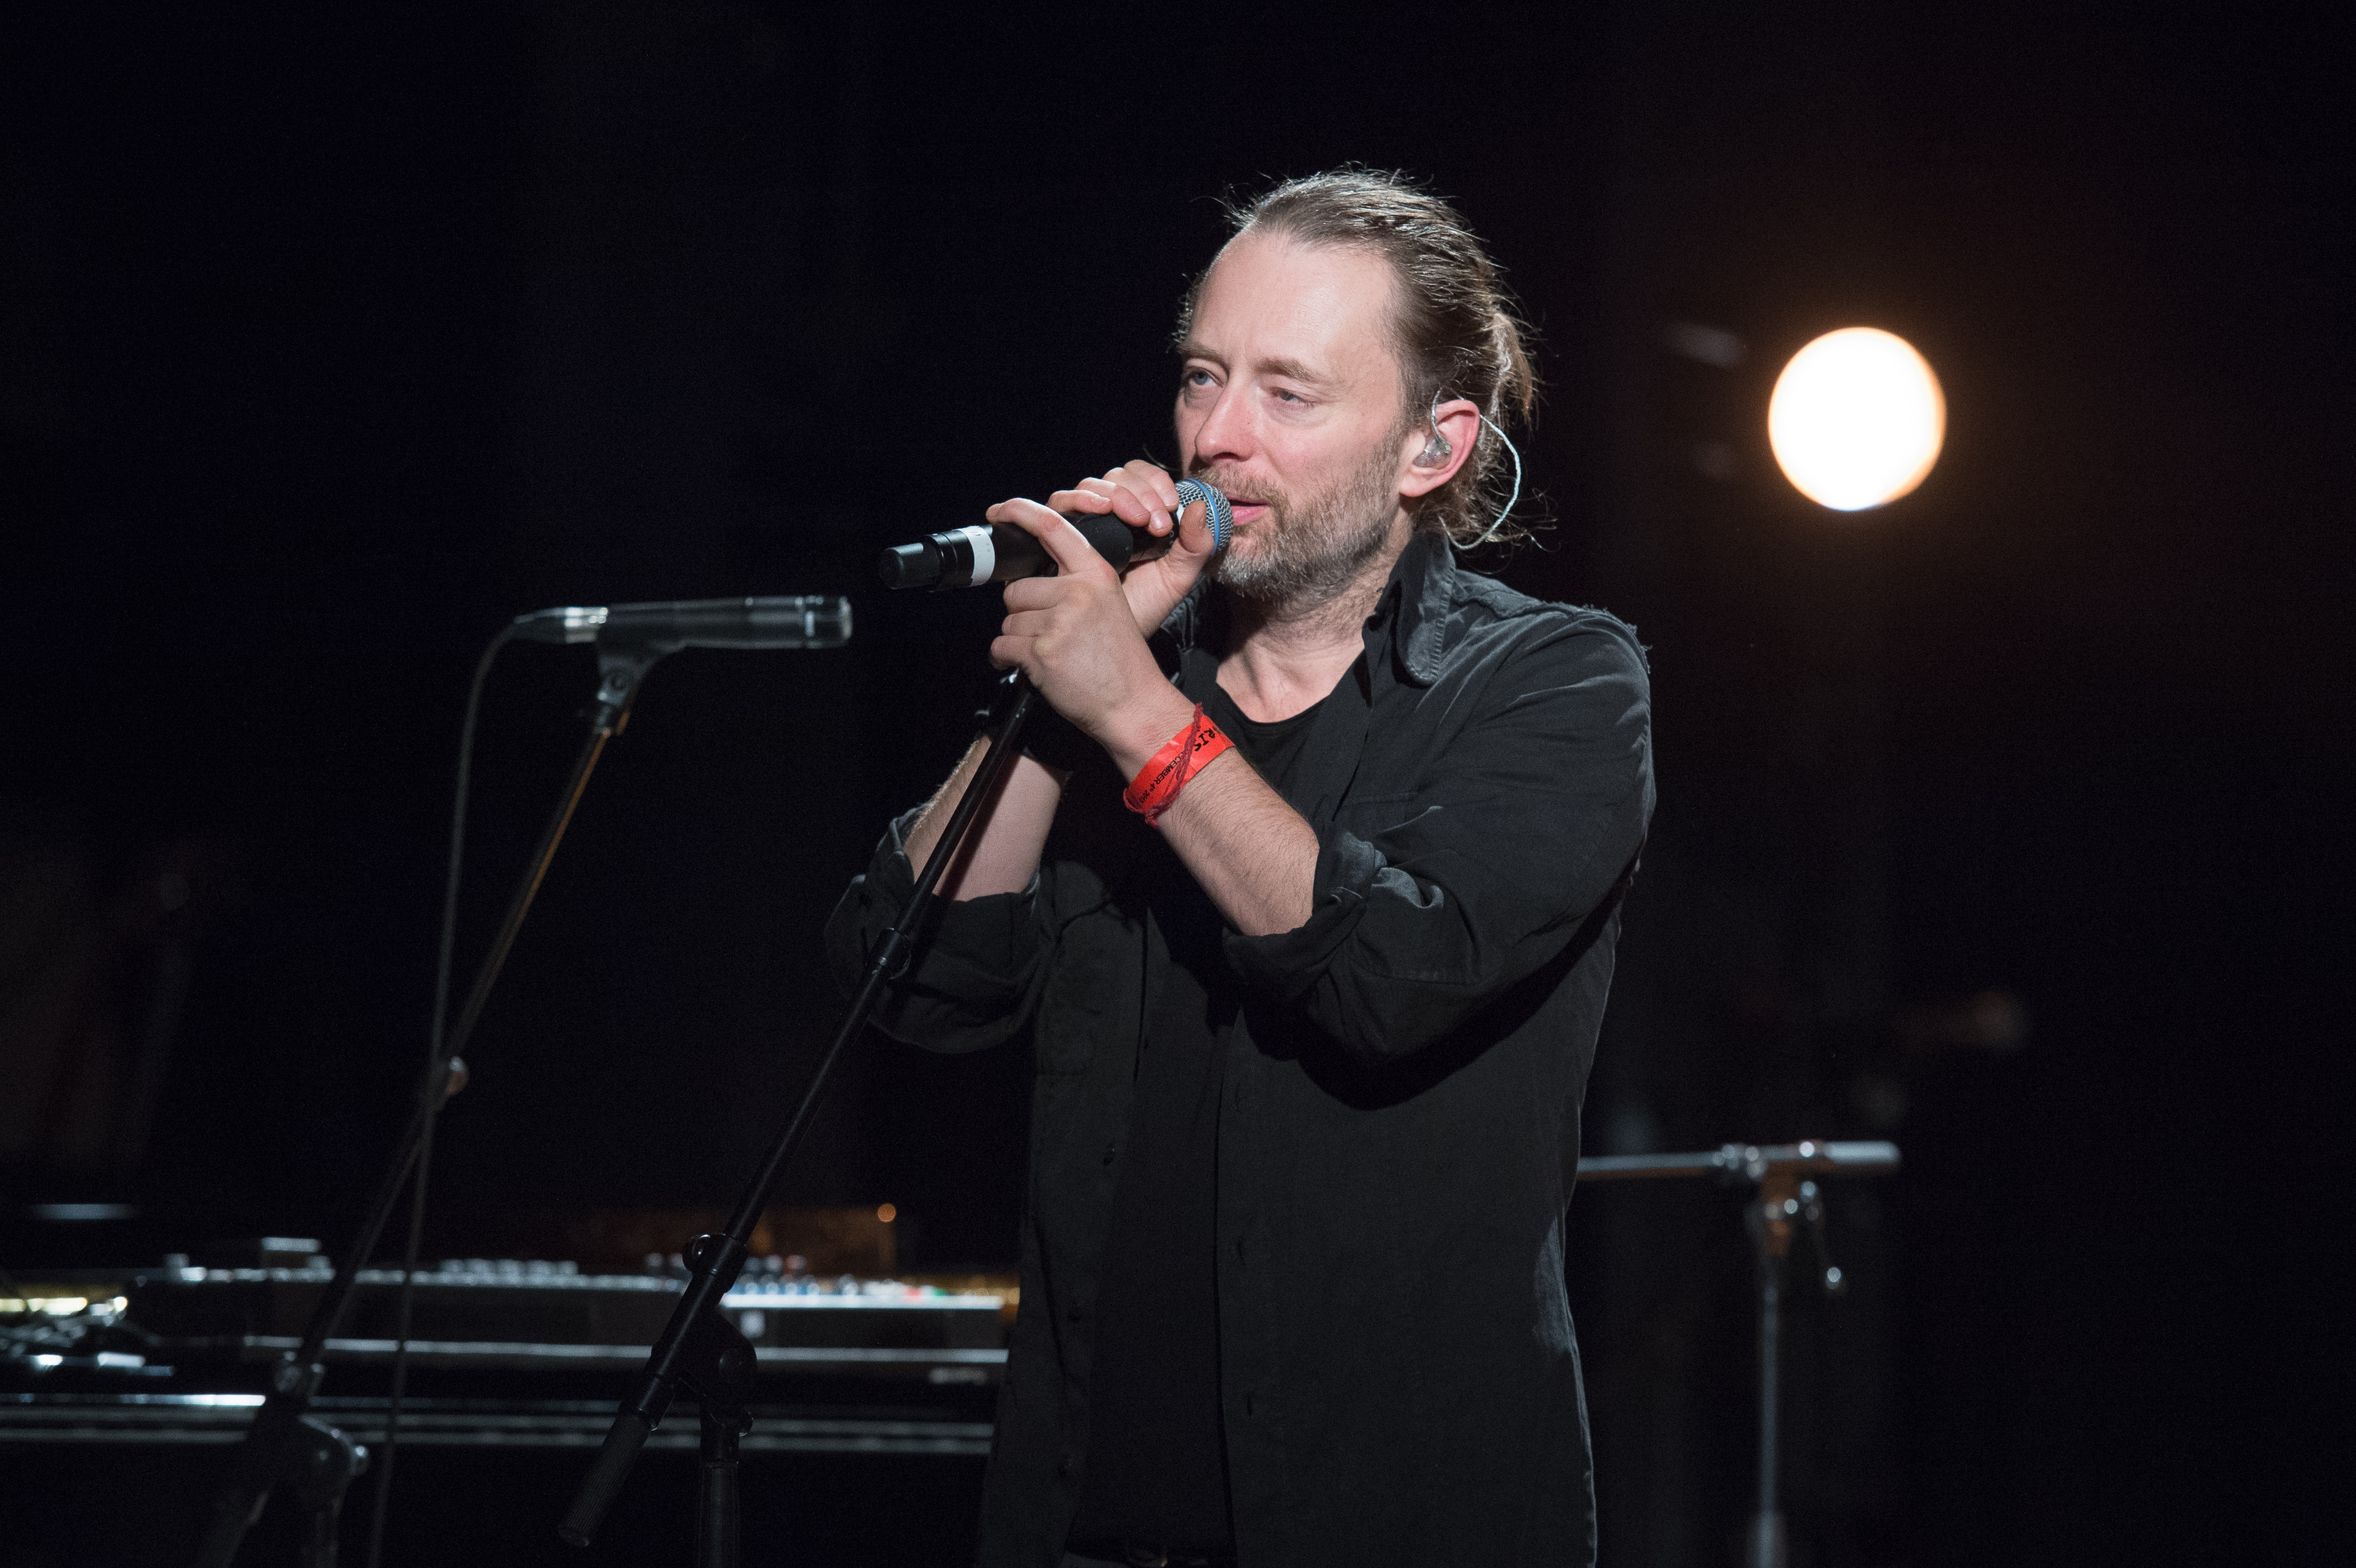 Thom Yorke performs during Pathway to Paris at Le Trianon on December 4, 2015 in Paris, France.